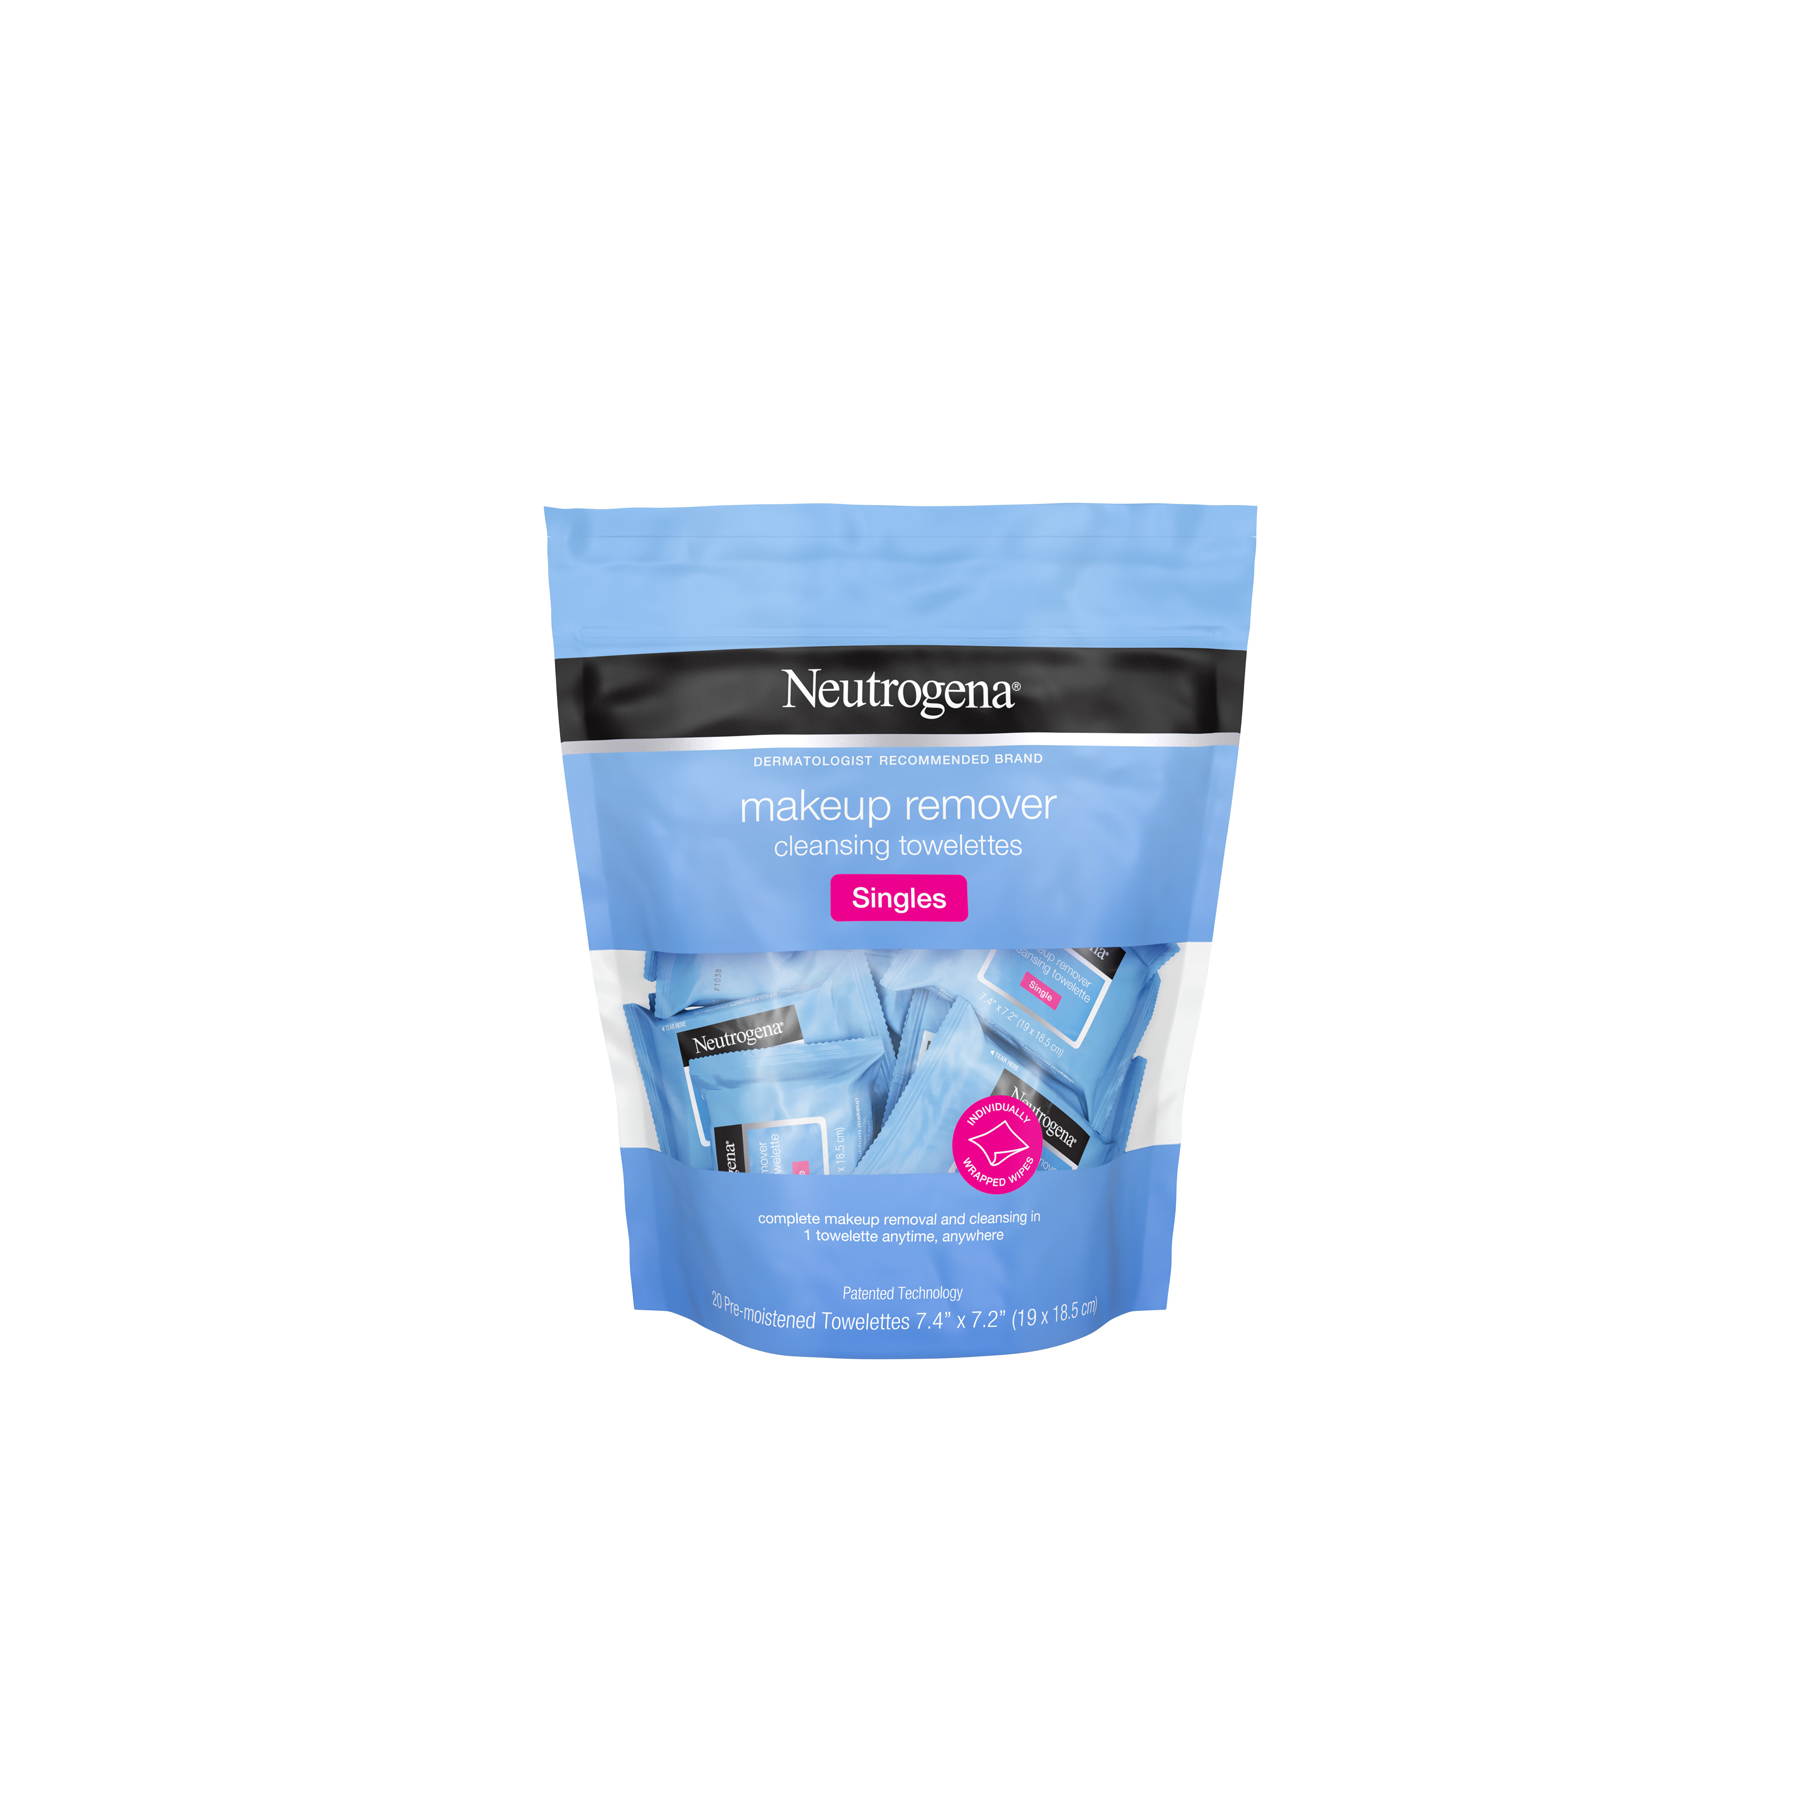 Gym bag essentials and luxuries - Neutrogena Makeup Remover Facial Cleansing Towelettes Singles